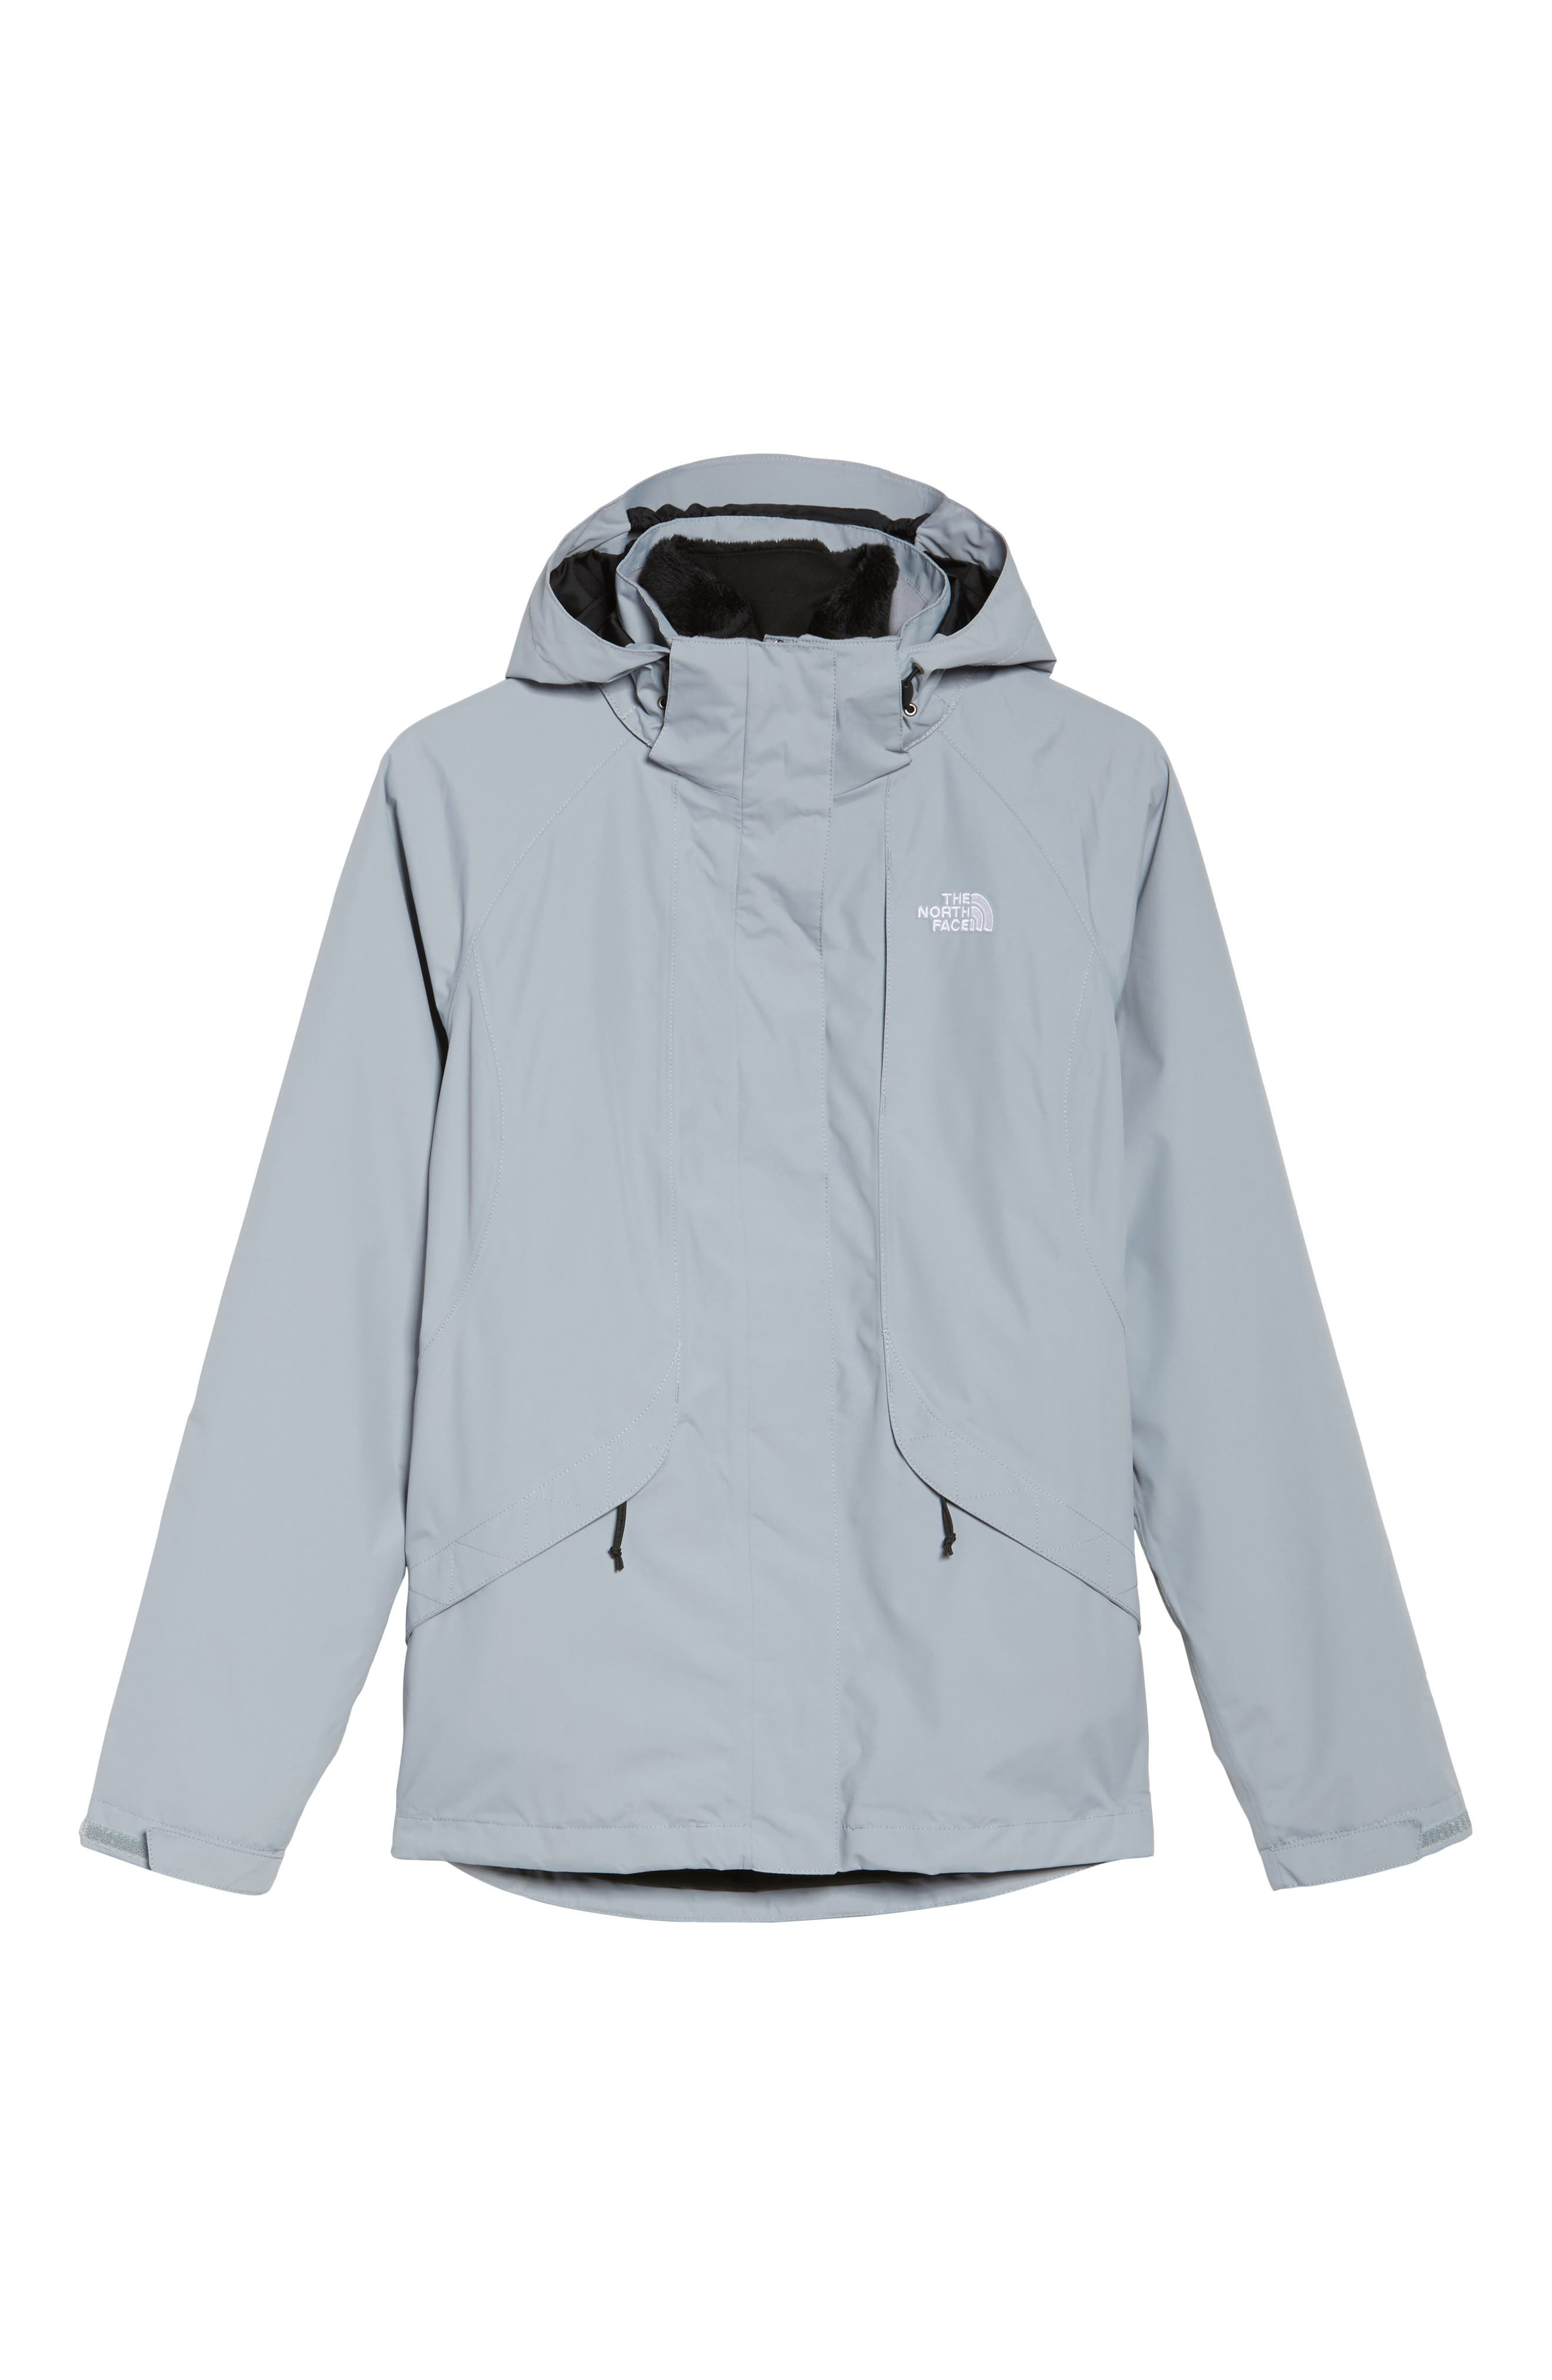 Boundary Triclimate<sup>®</sup> 3-in-1 Jacket,                             Alternate thumbnail 6, color,                             030